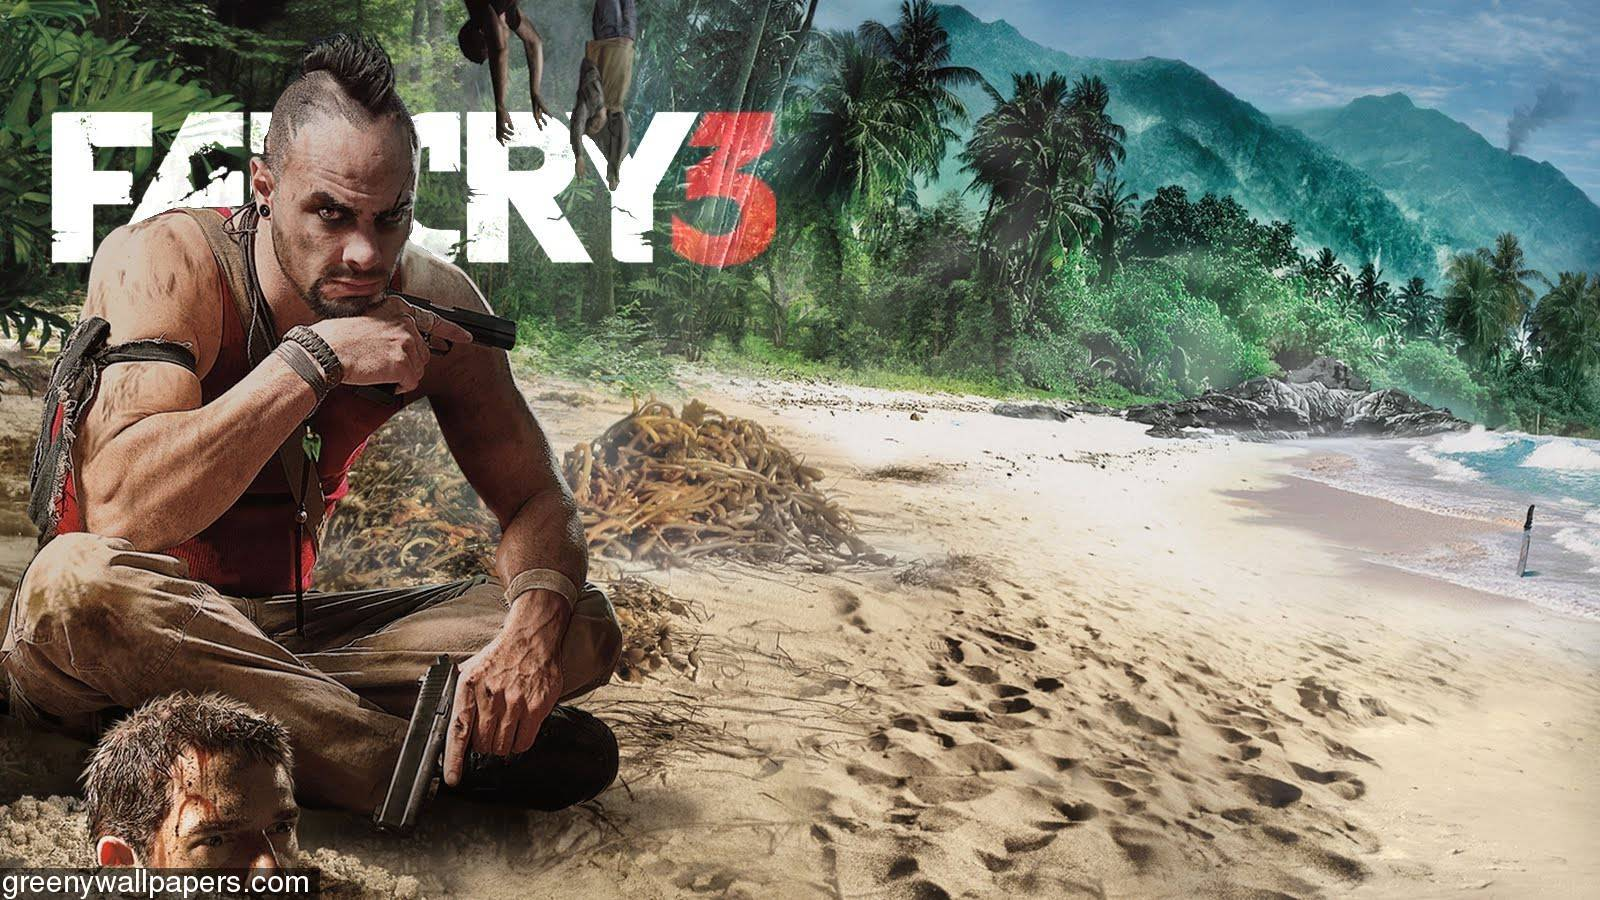 Far Cry 3 Wallpapers - Wallpaper Cave Far Cry 3 Wallpaper 1920x1200